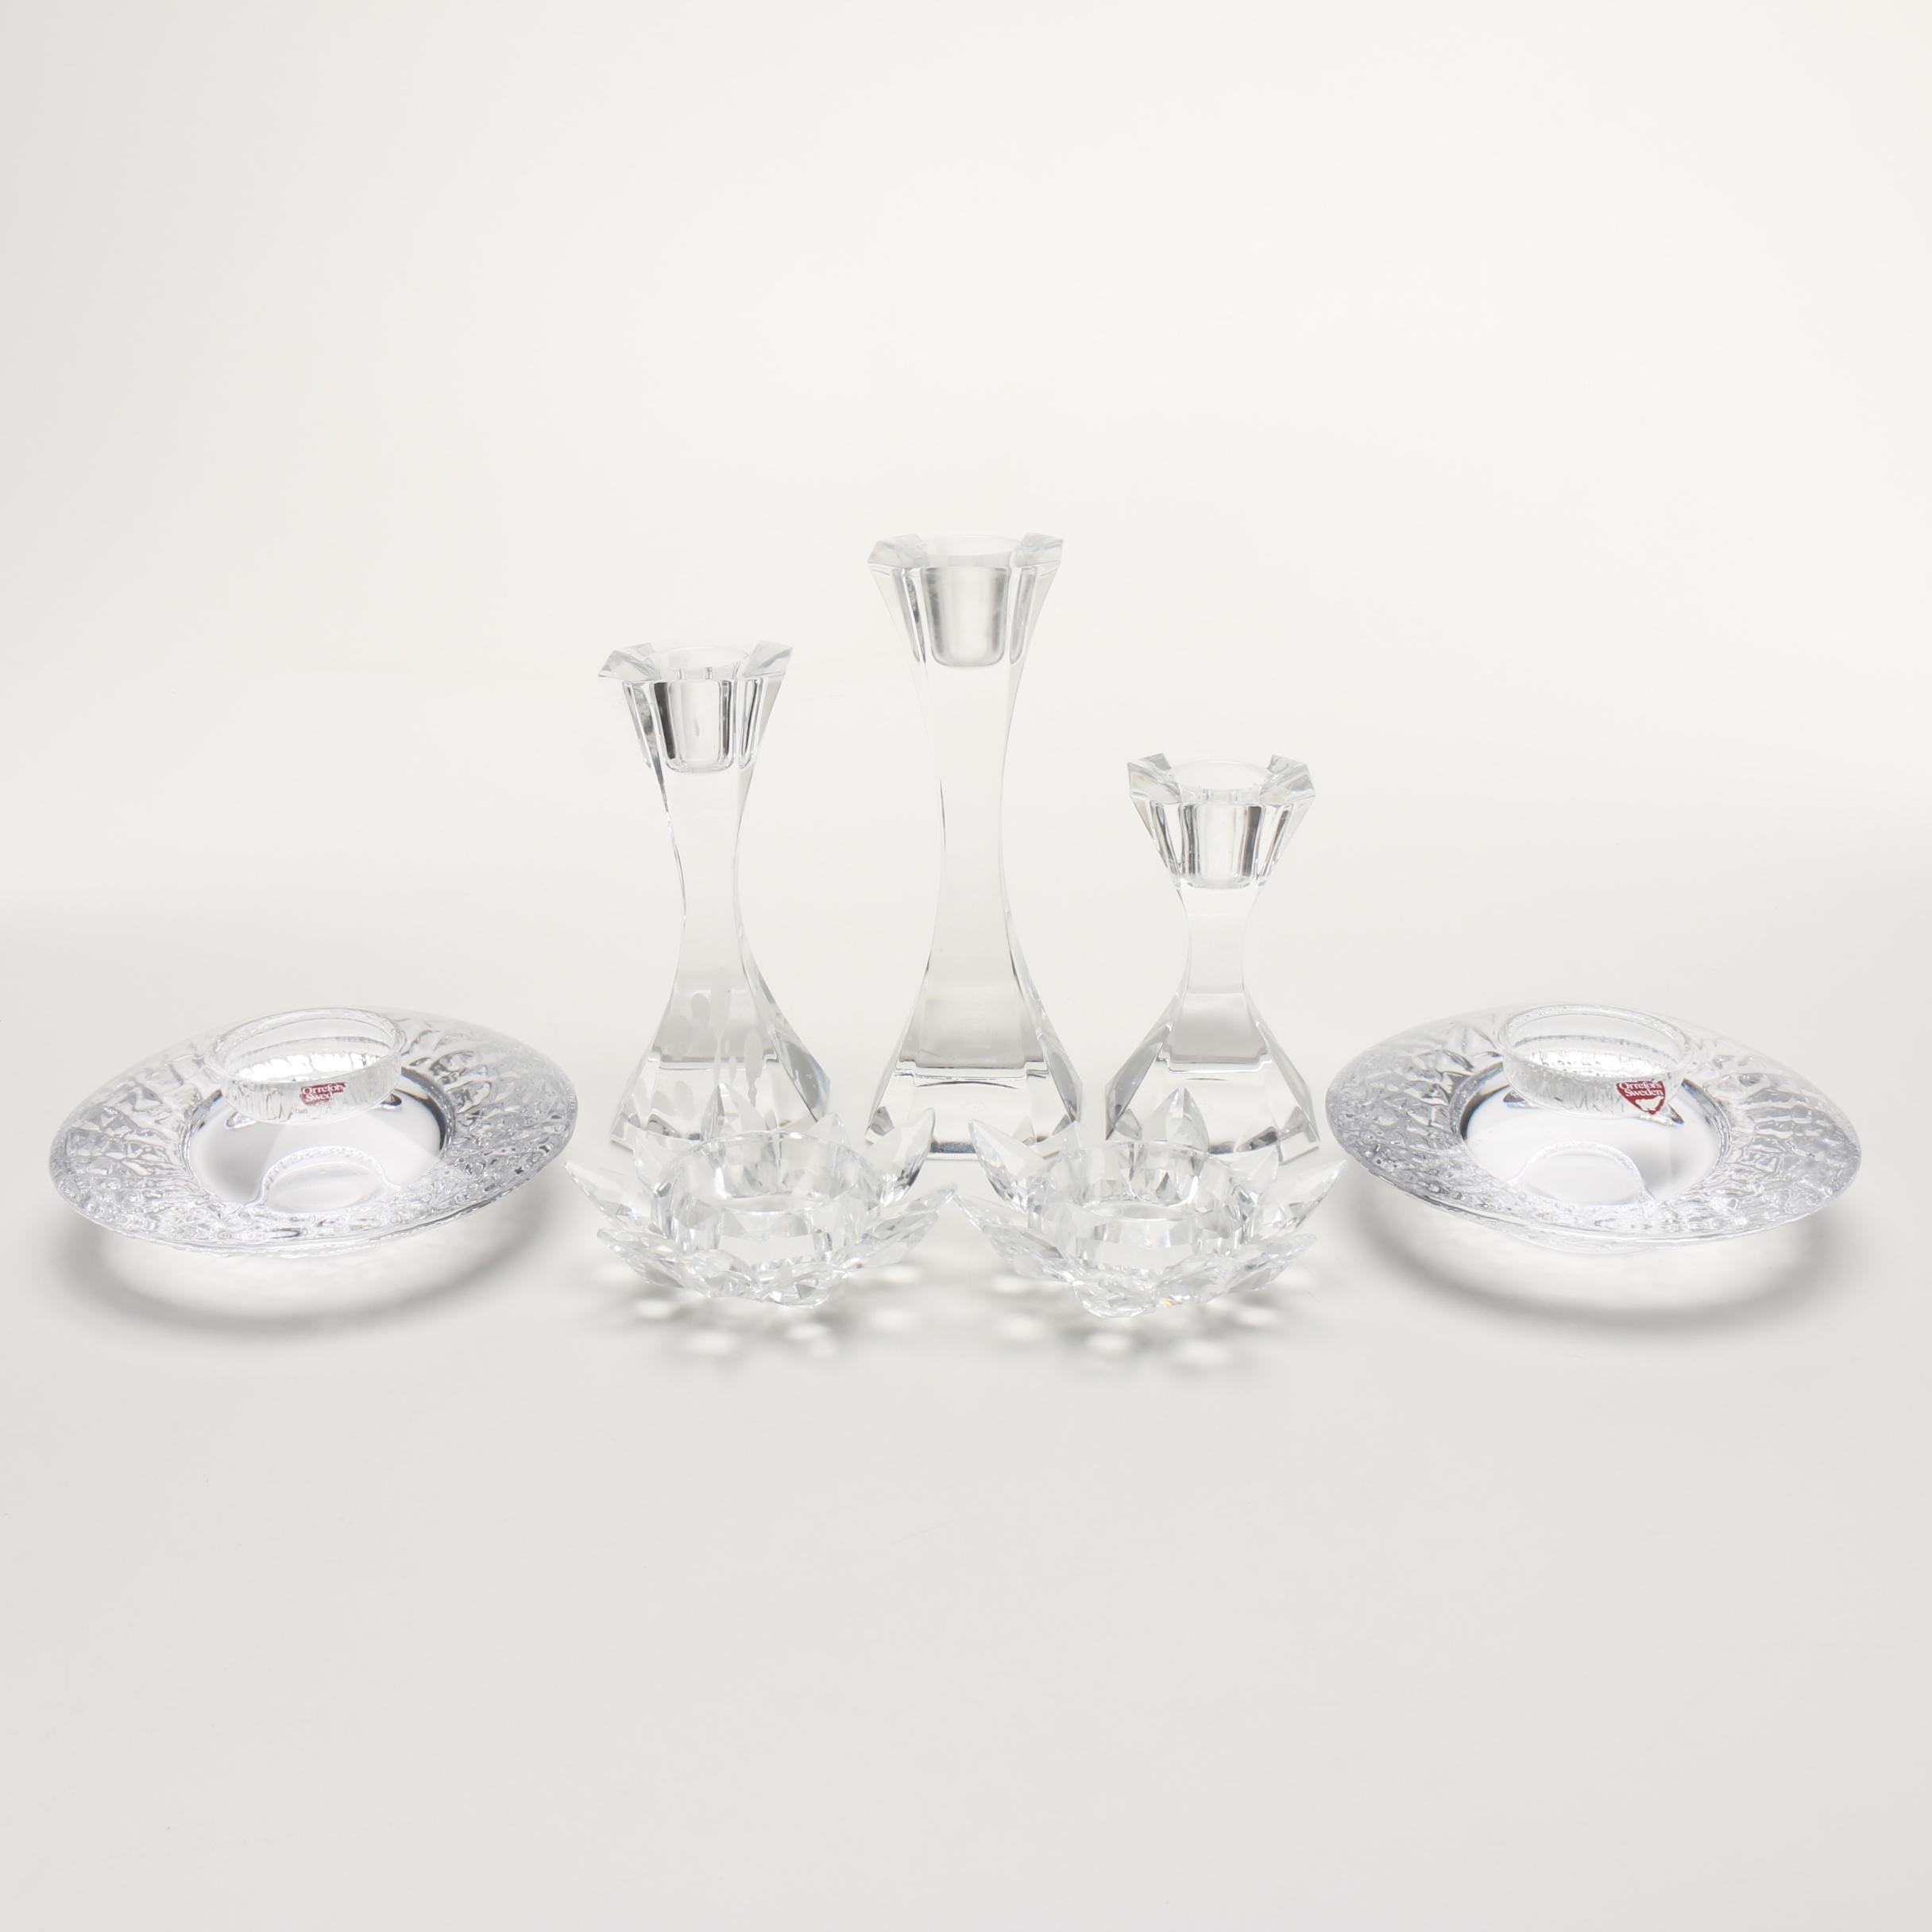 Crystal Candle Holders Including Orrefors and Villeroy & Boch